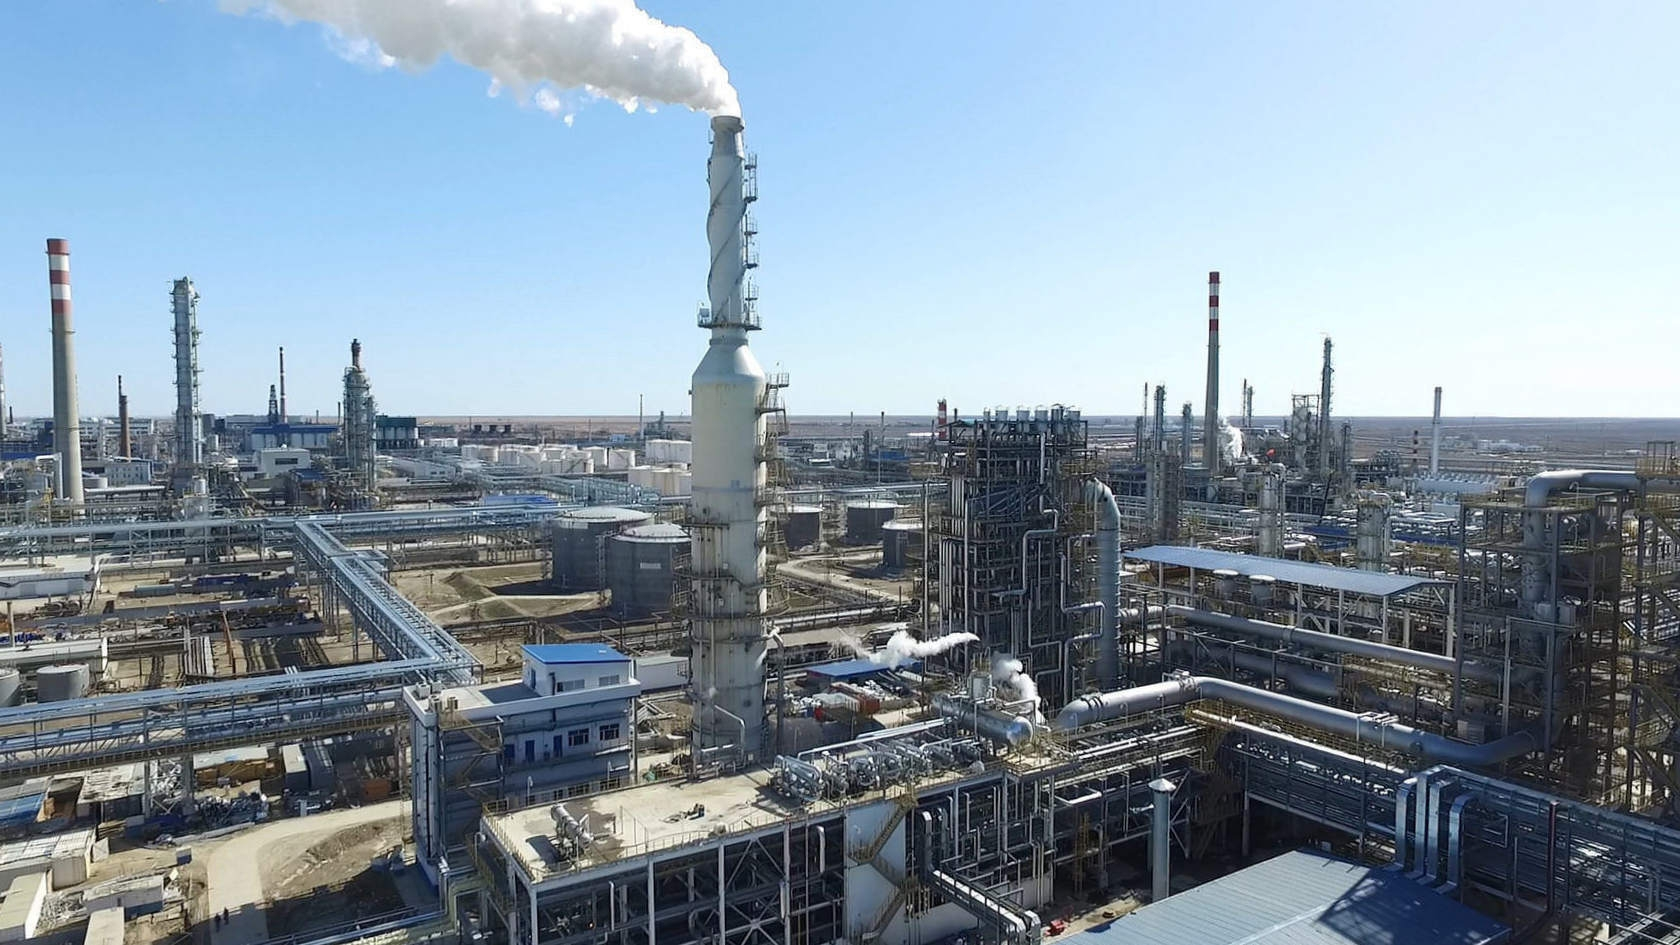 Atyrau refinery, in northwestern Kazakhstan. (Photo: Kazakhstan prime minister's official website)